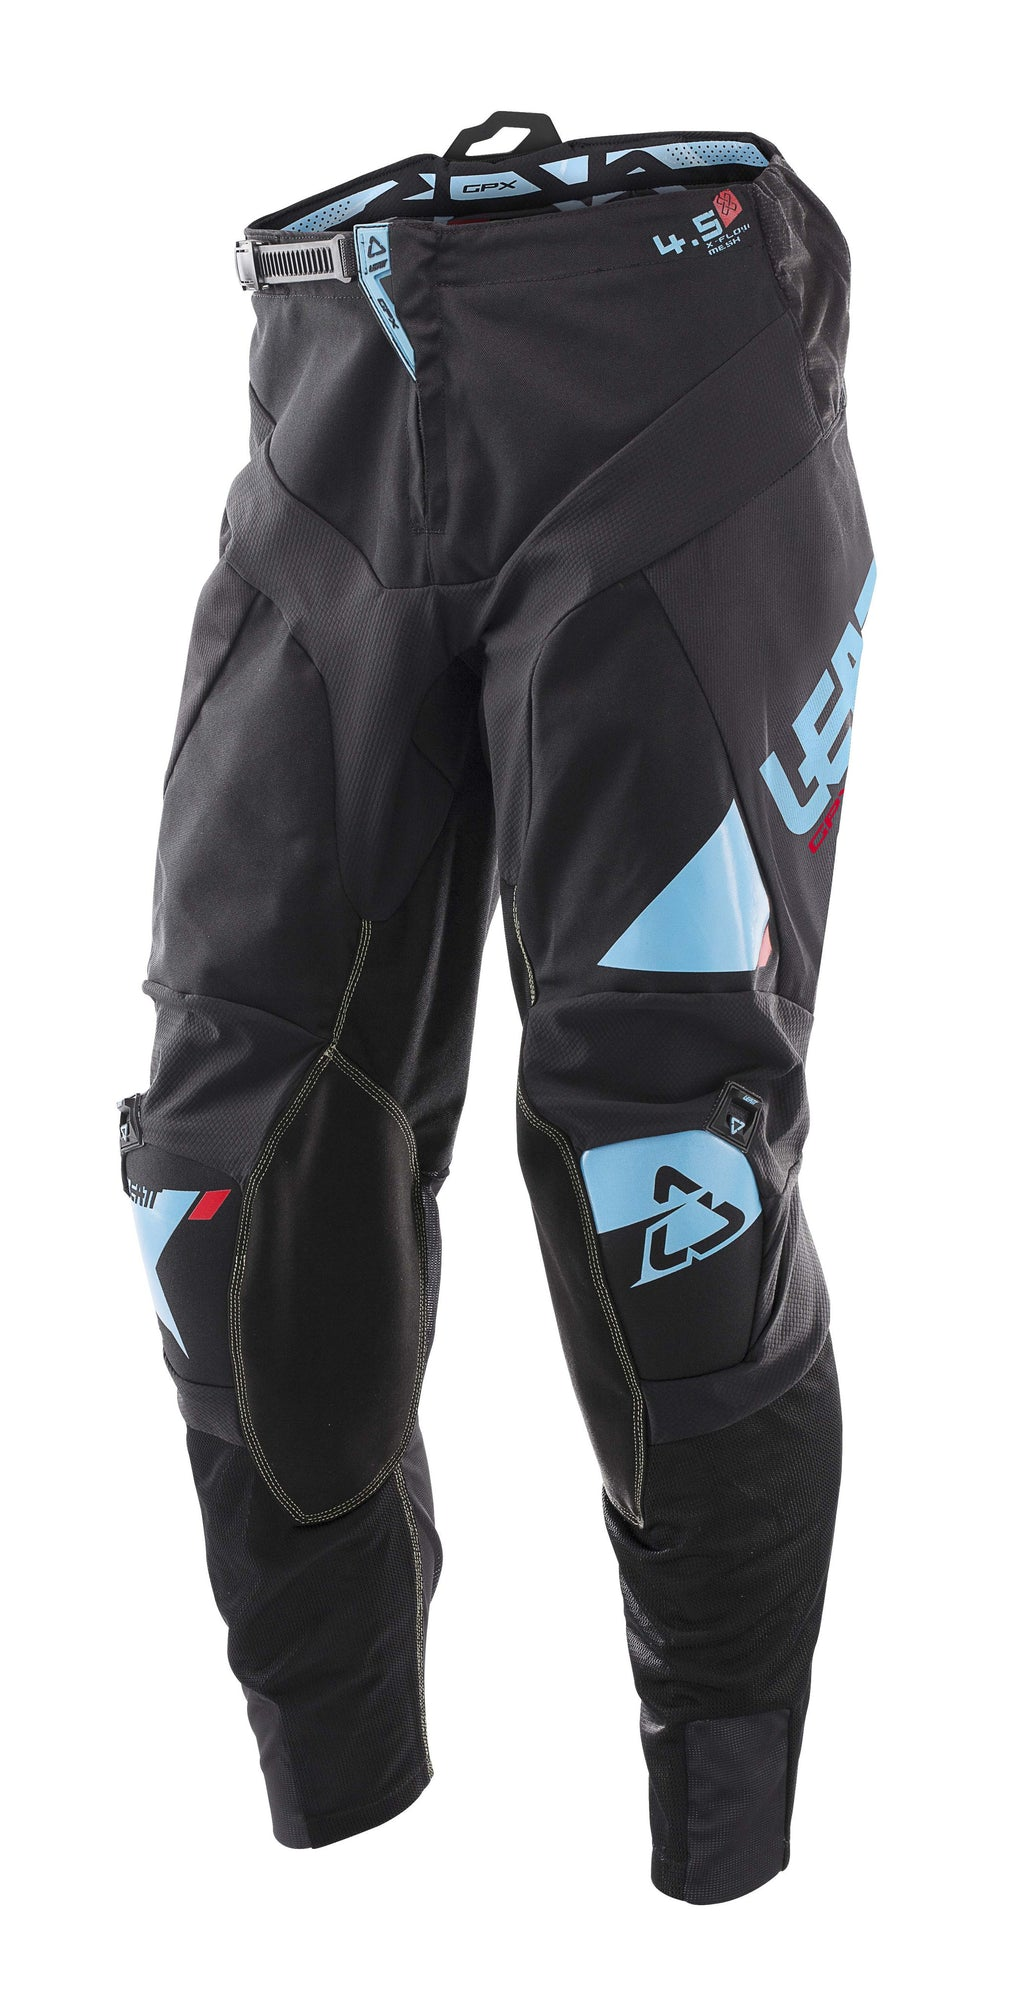 Kit Pants Leatt GPX 4.5Lite - 2017- Black Grey 28in